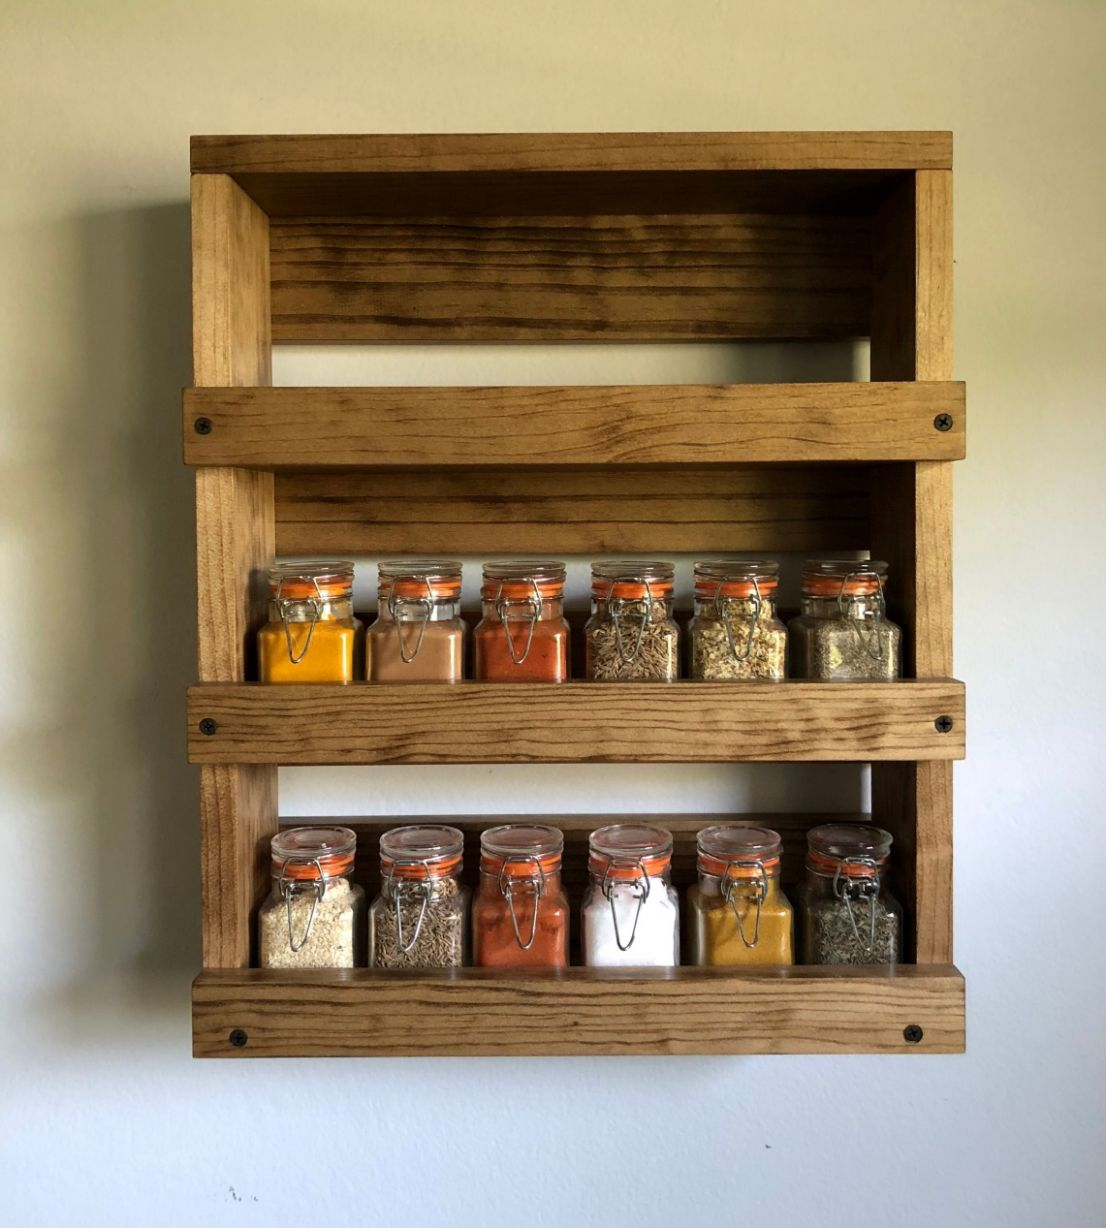 9 amazing DIY wooden projects for home decor ideas